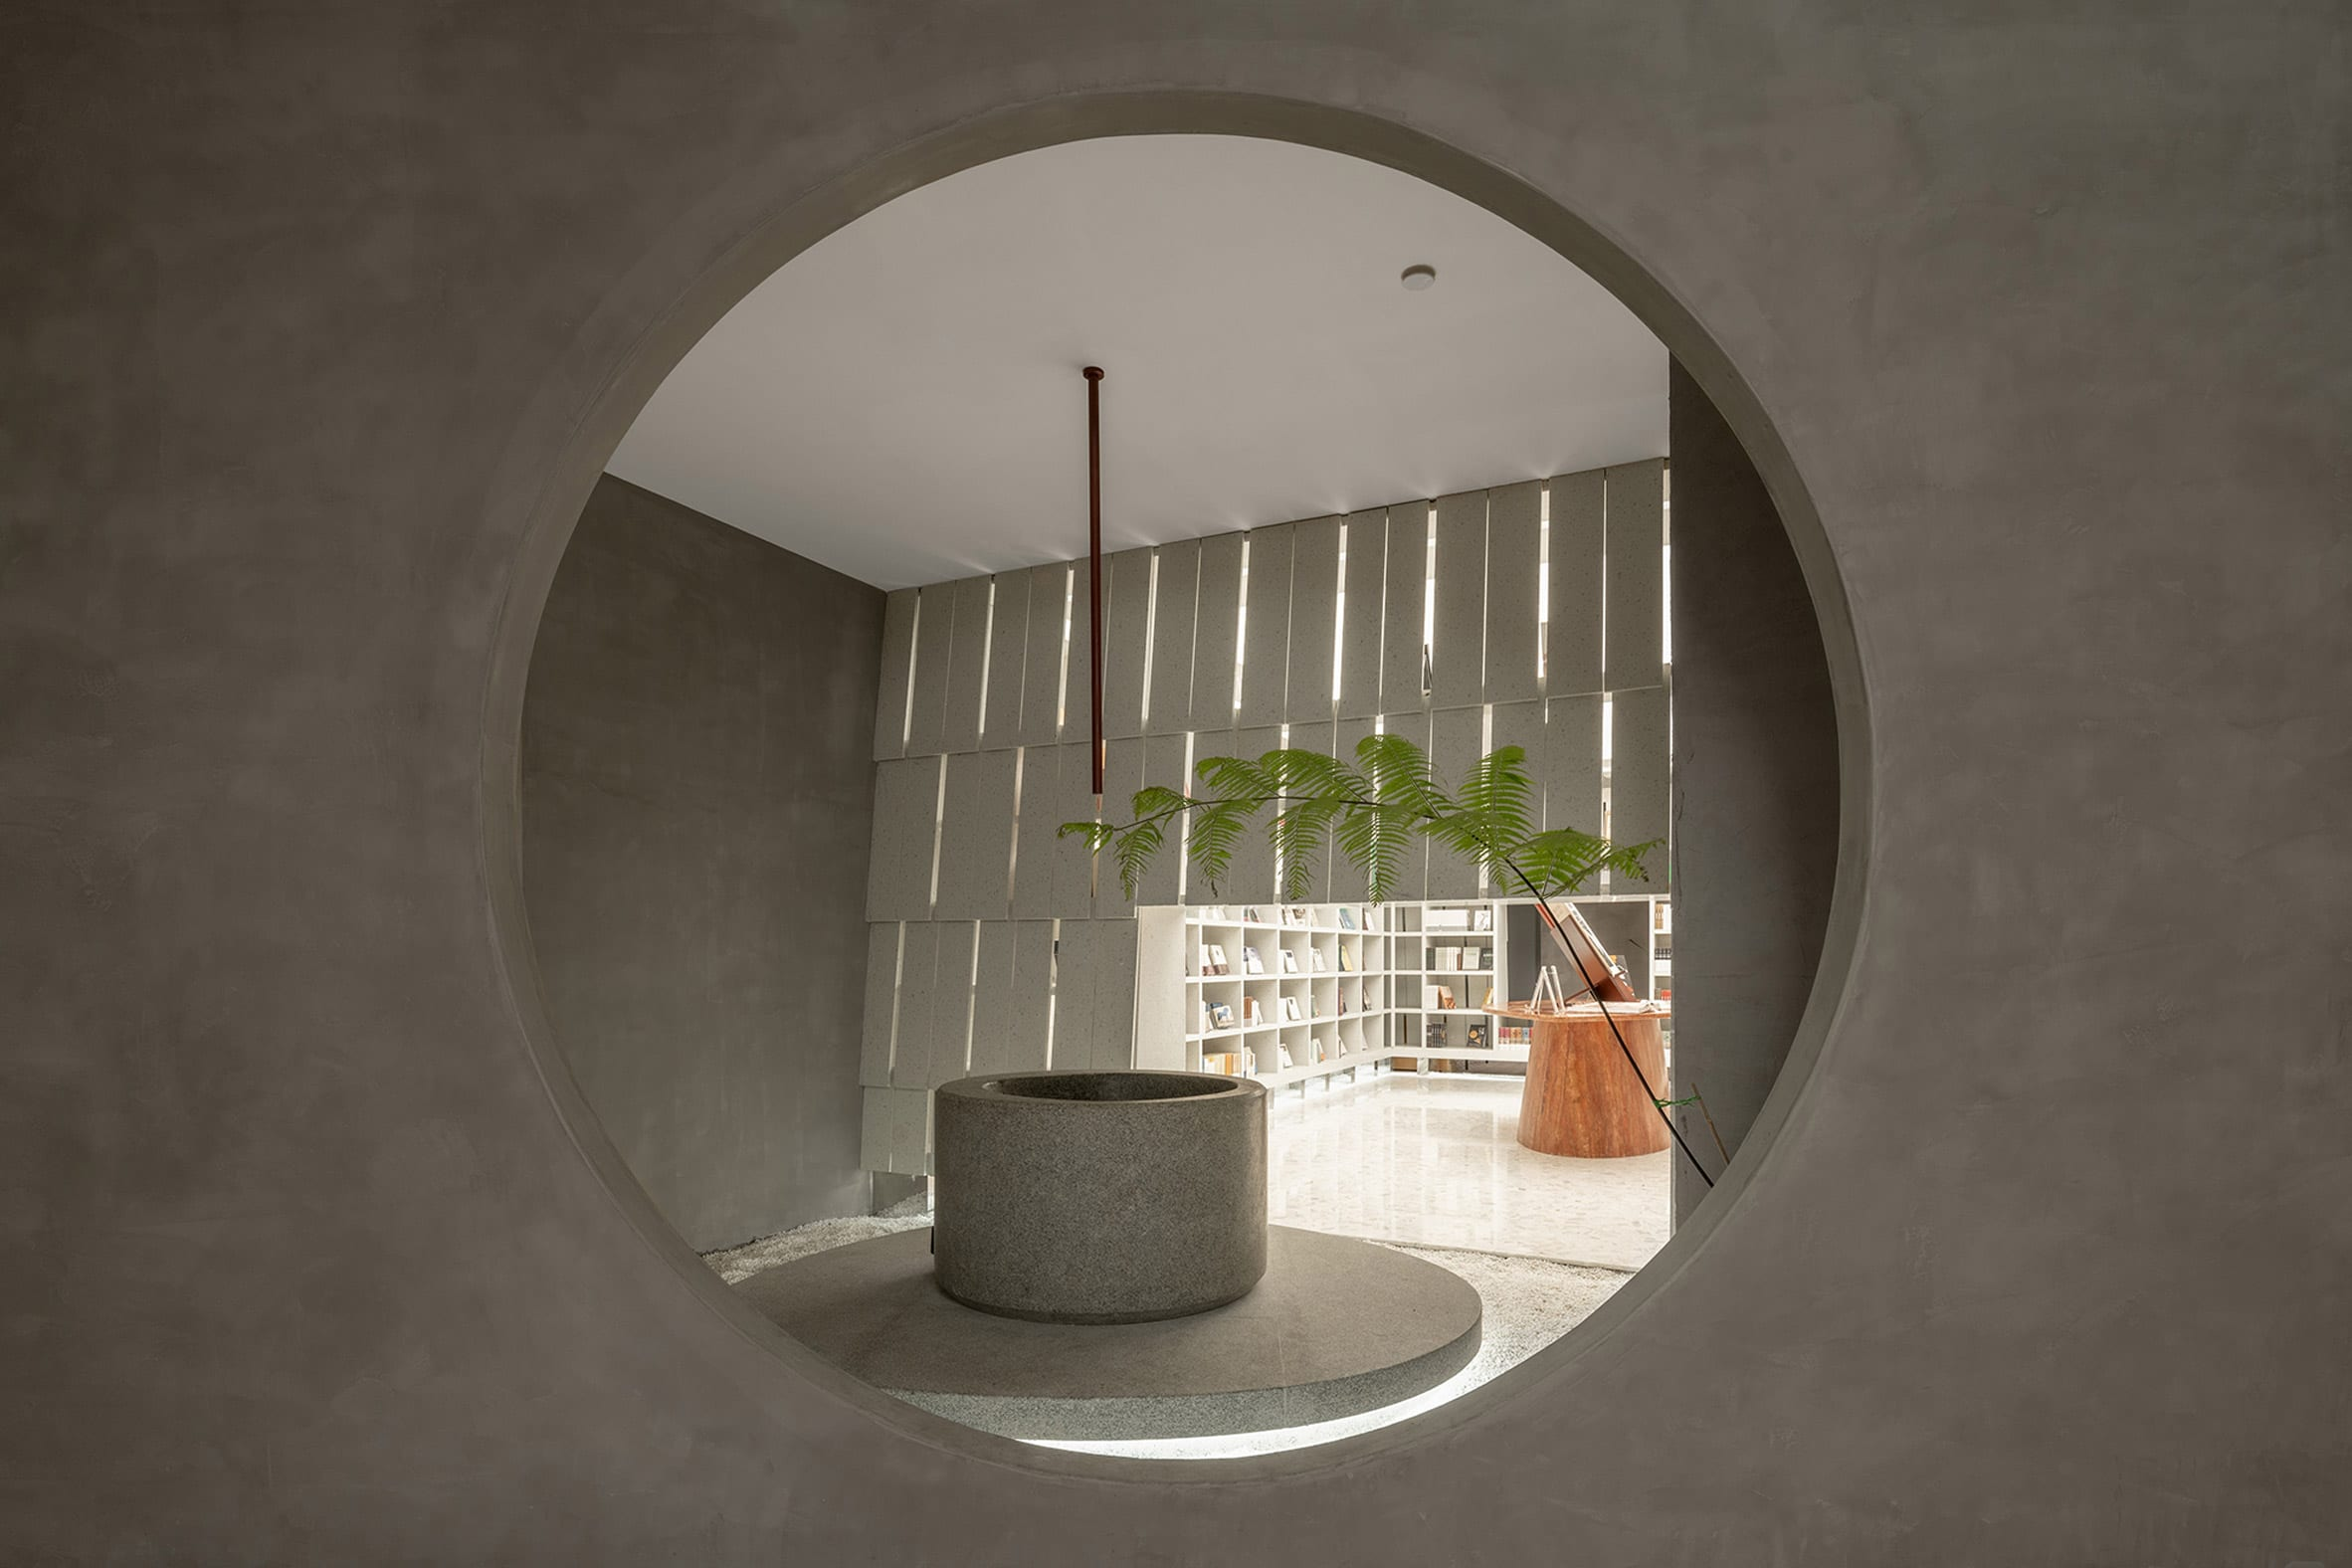 The concept of framing views is borrowed from traditional Chinese garden design